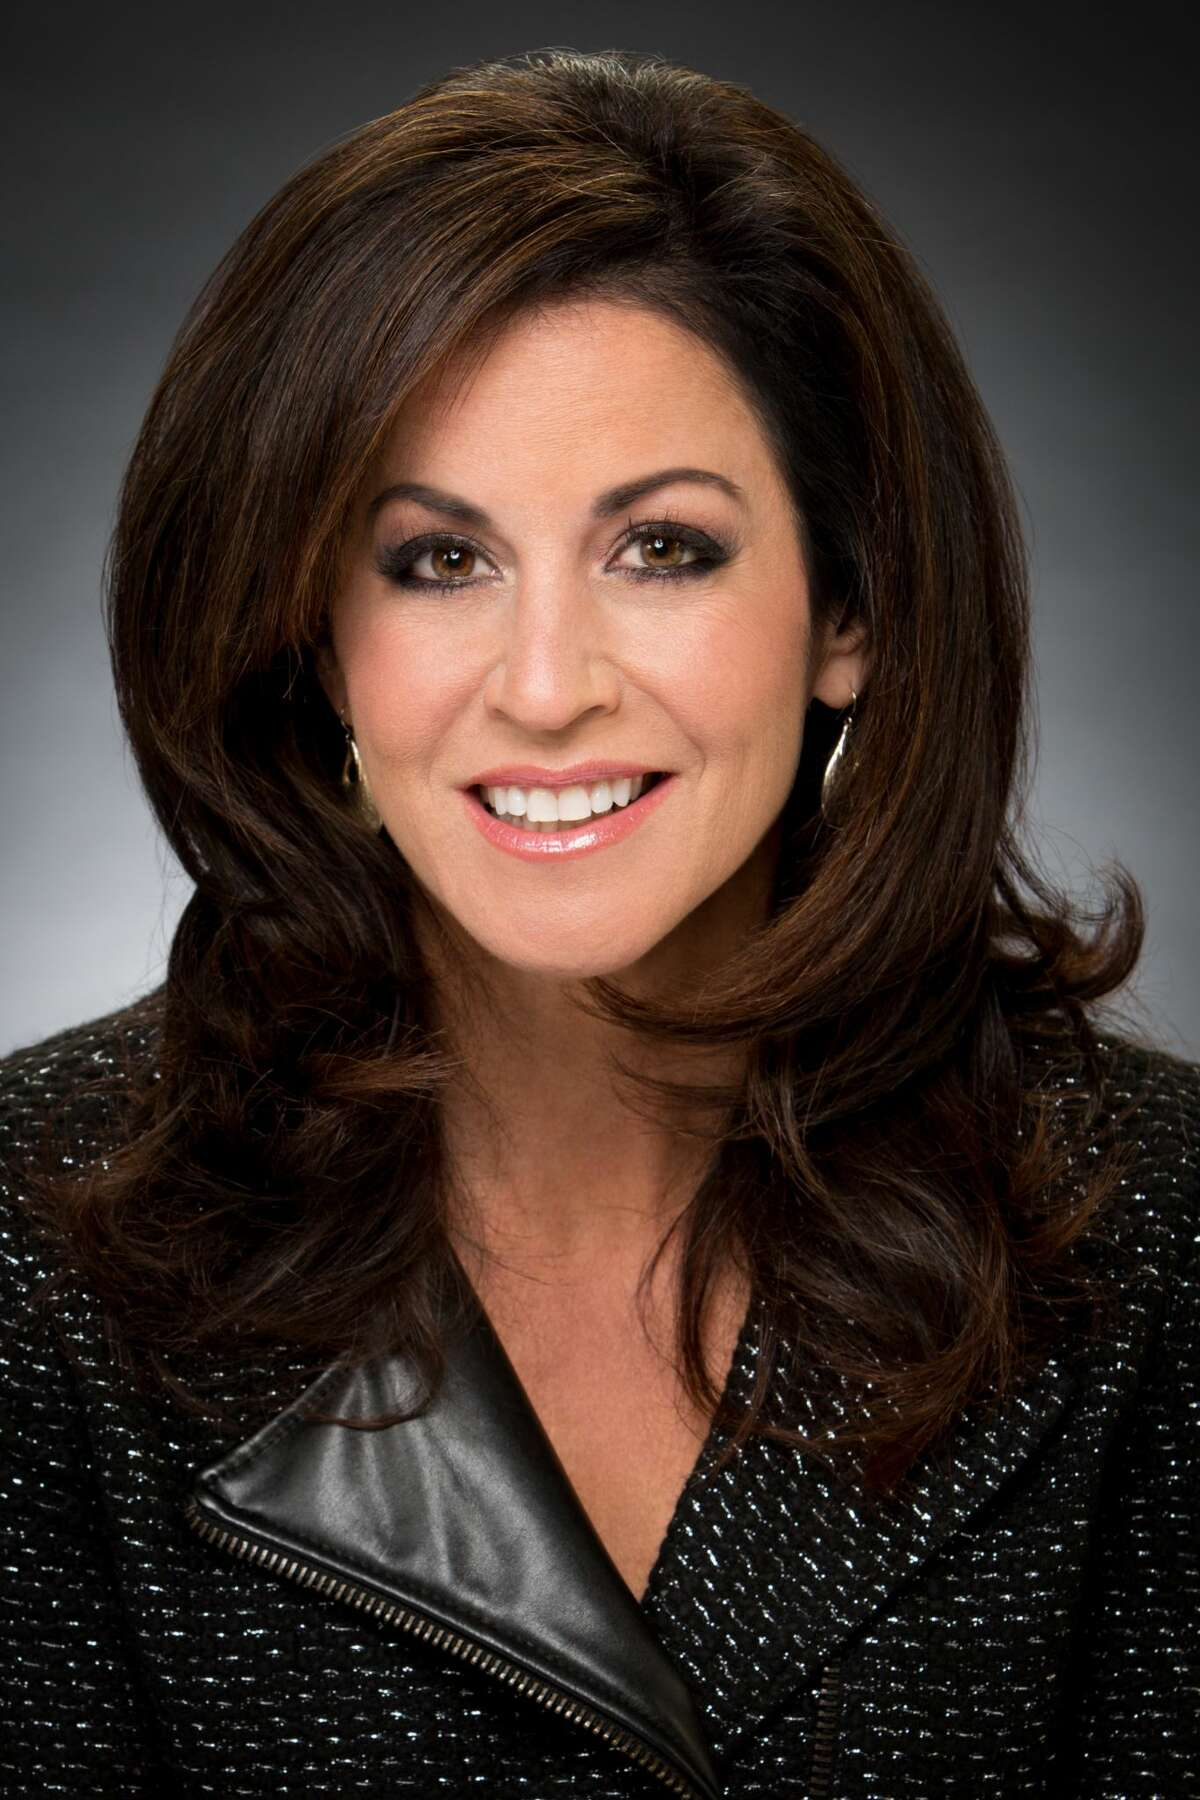 Veteran KSAT anchor Ursula Pari will add the noon hour to her 5 p.m. newscast, but will drop the 6 p.m. broadcast.